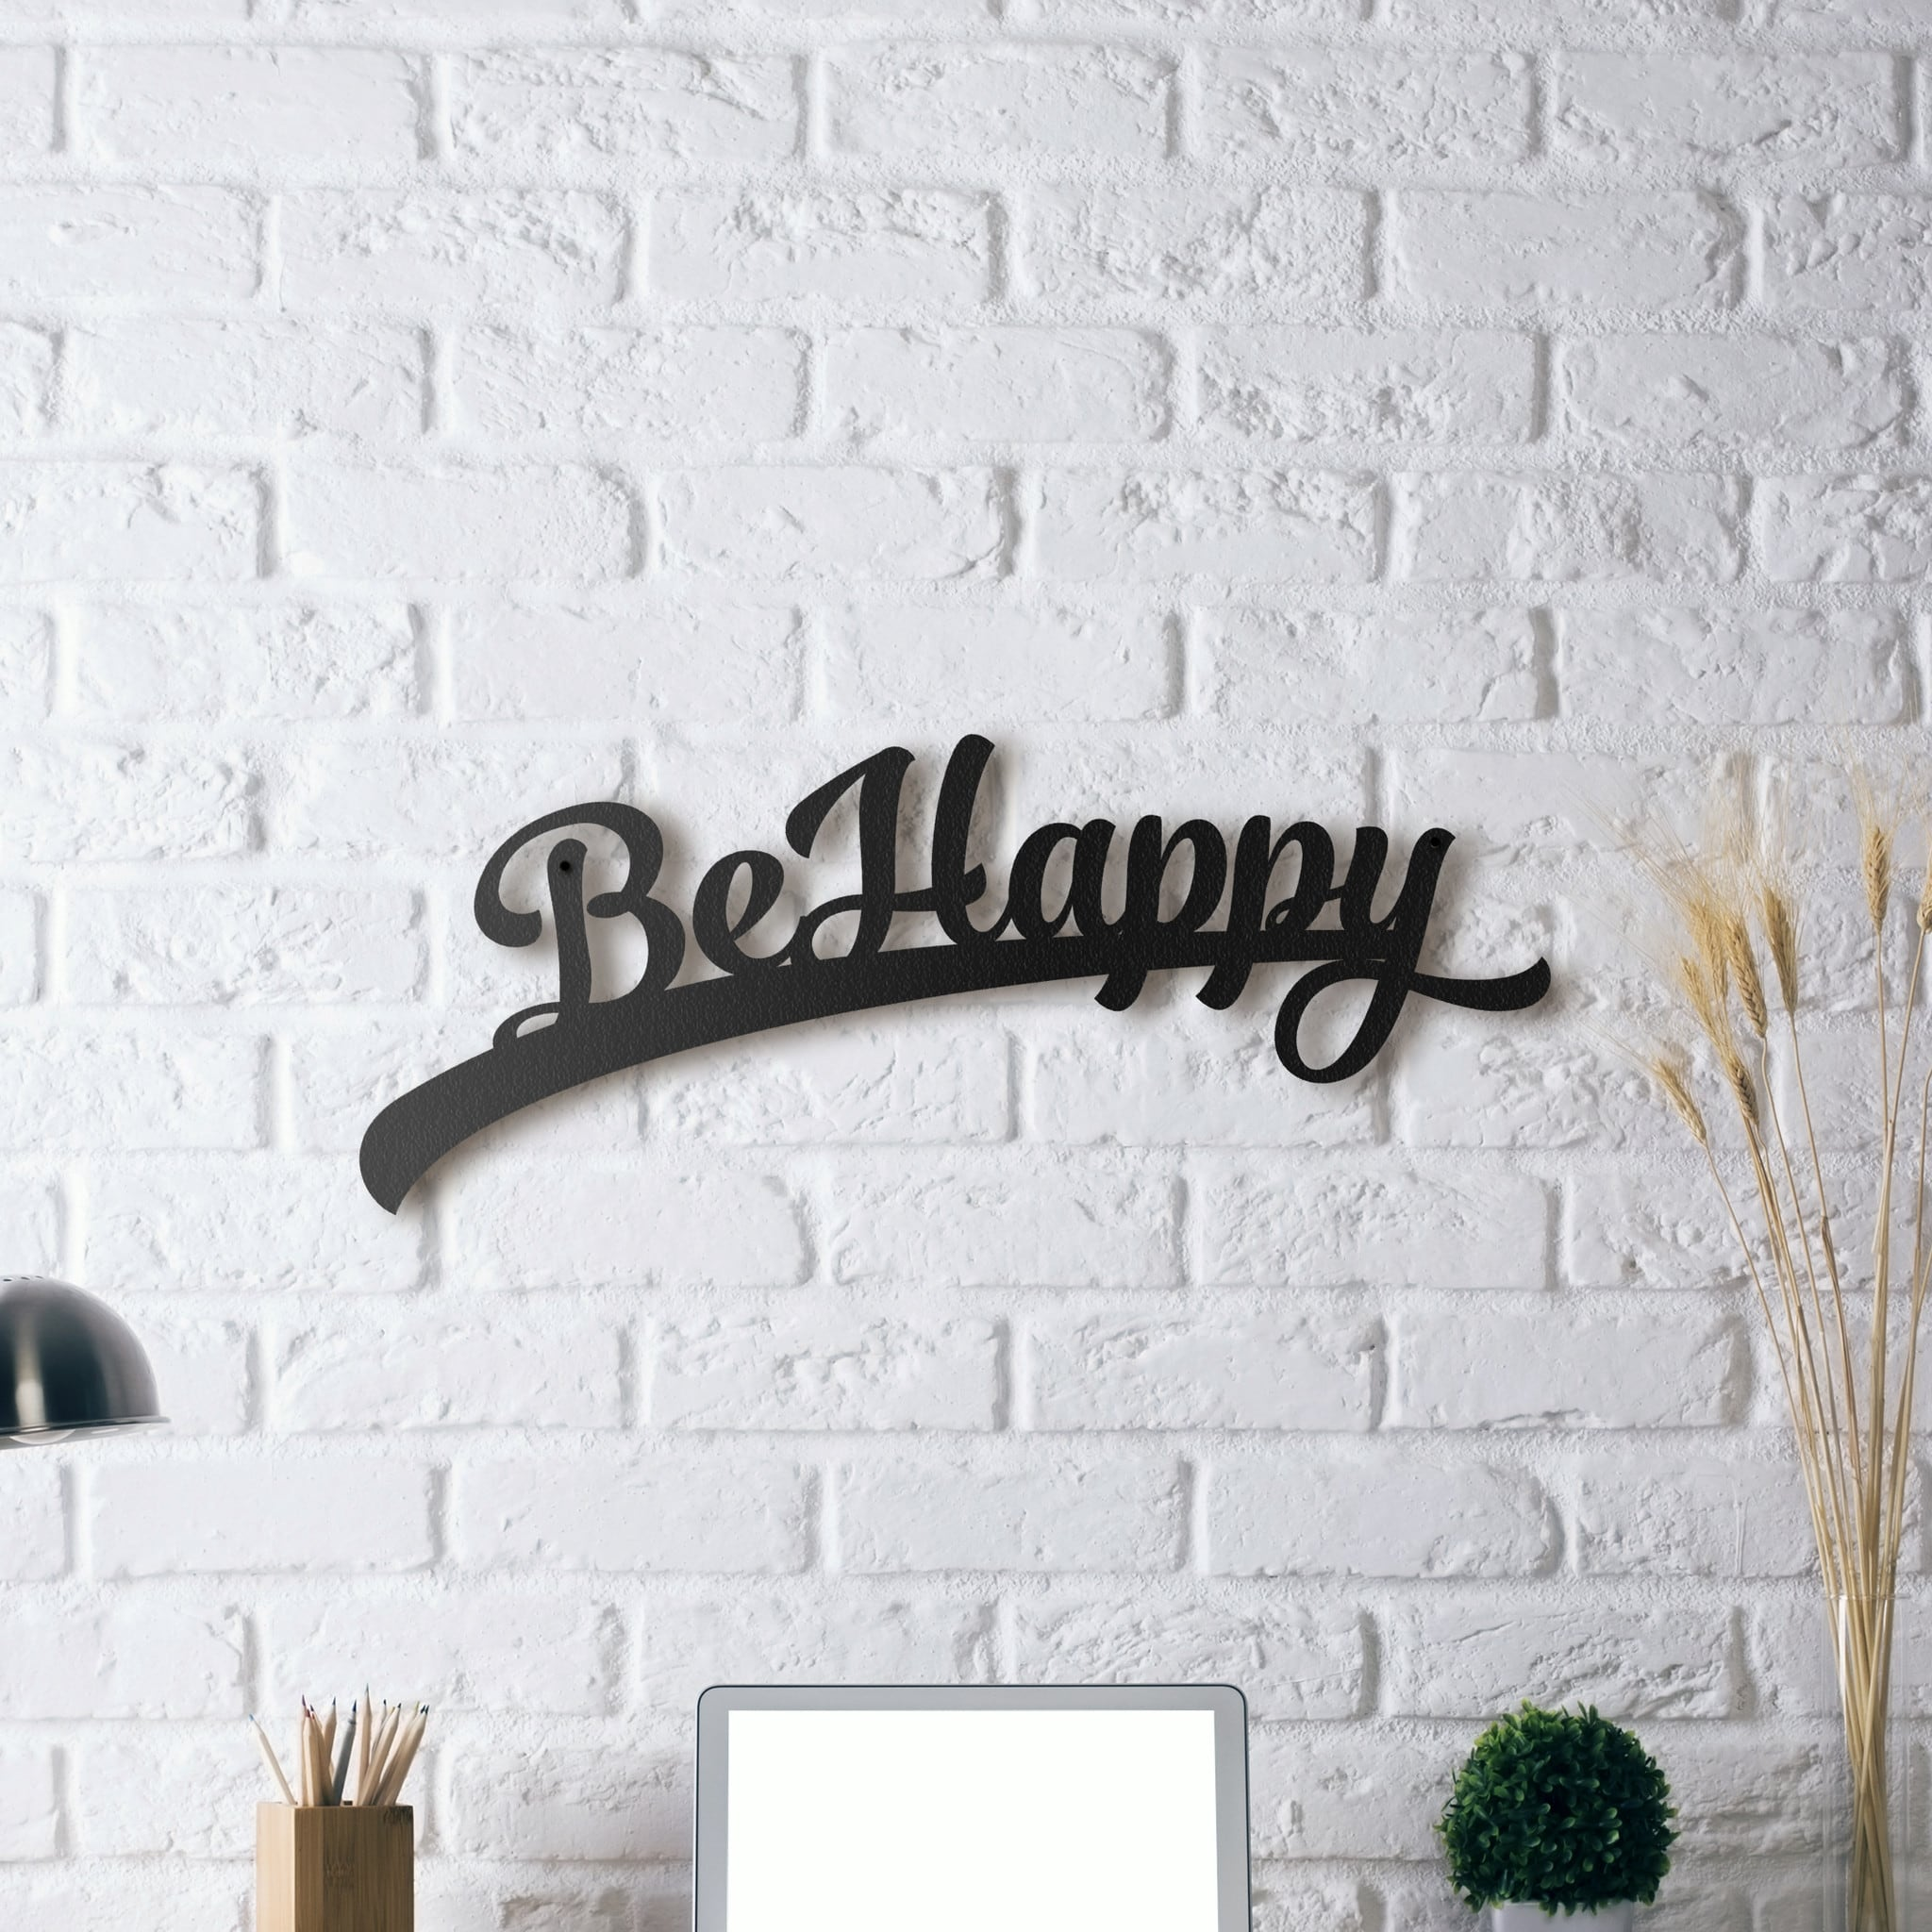 Zen metal decoration of the words be happy on metal for a cool interior